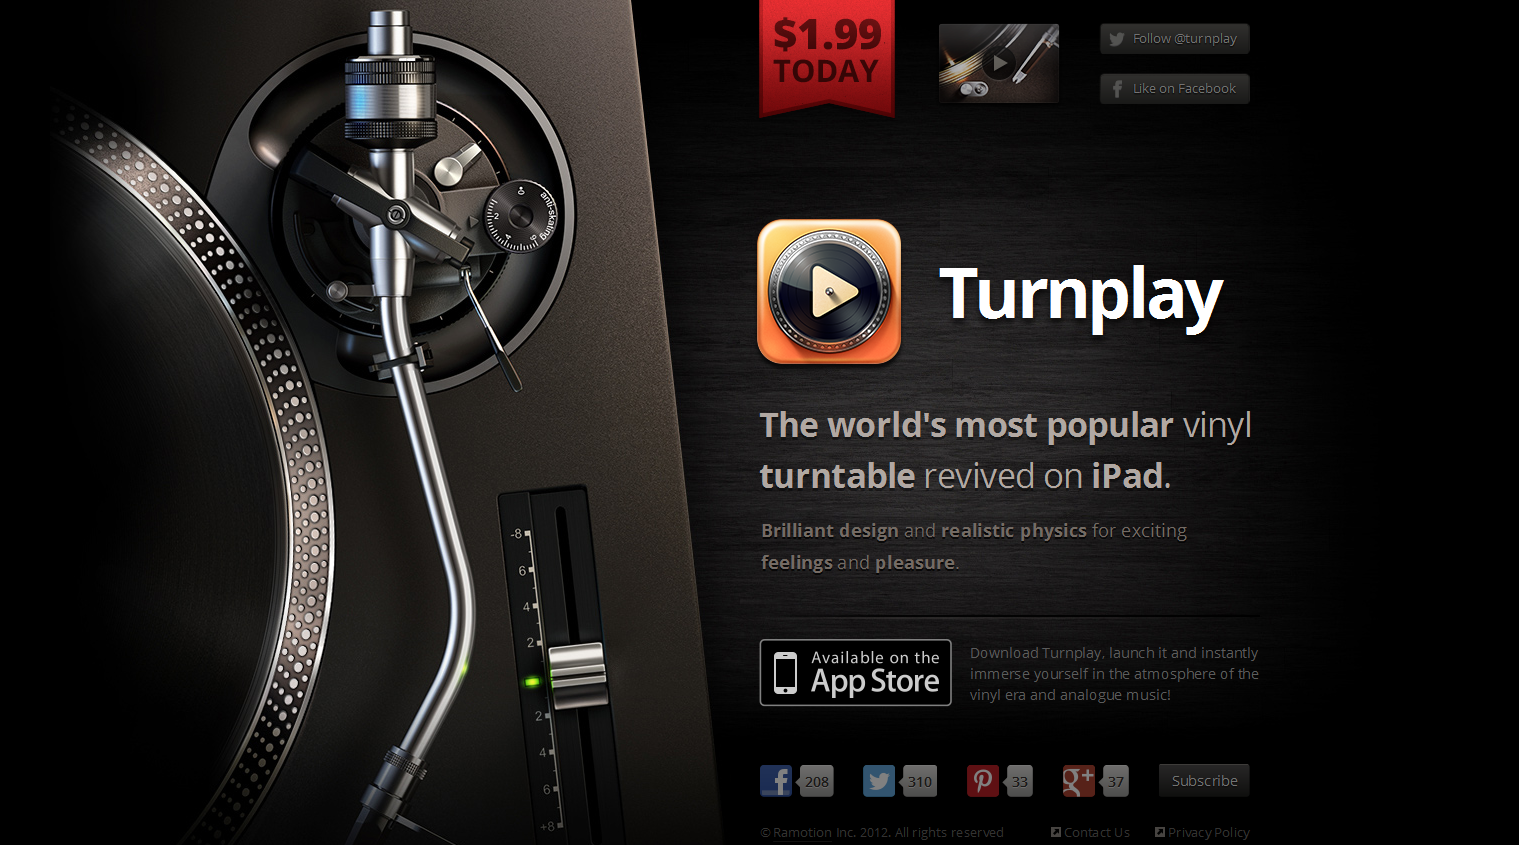 Photo: Turnplay; Source: http://turnplay.ramotion.com/en